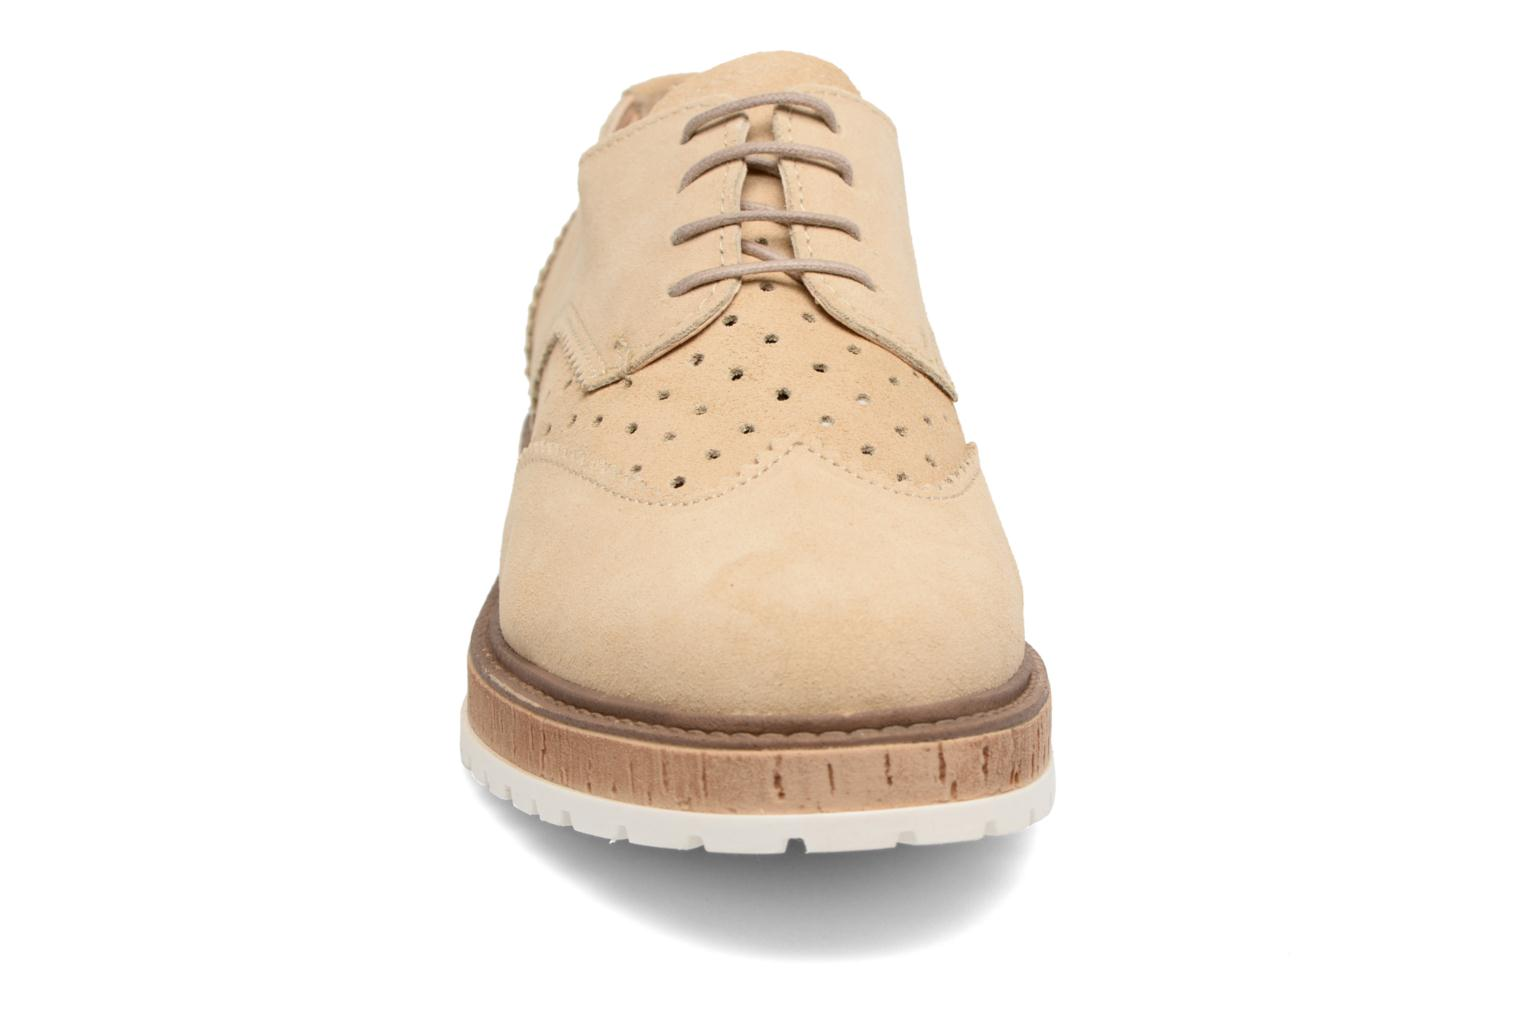 Crissy Lace Up 275 Creme beige